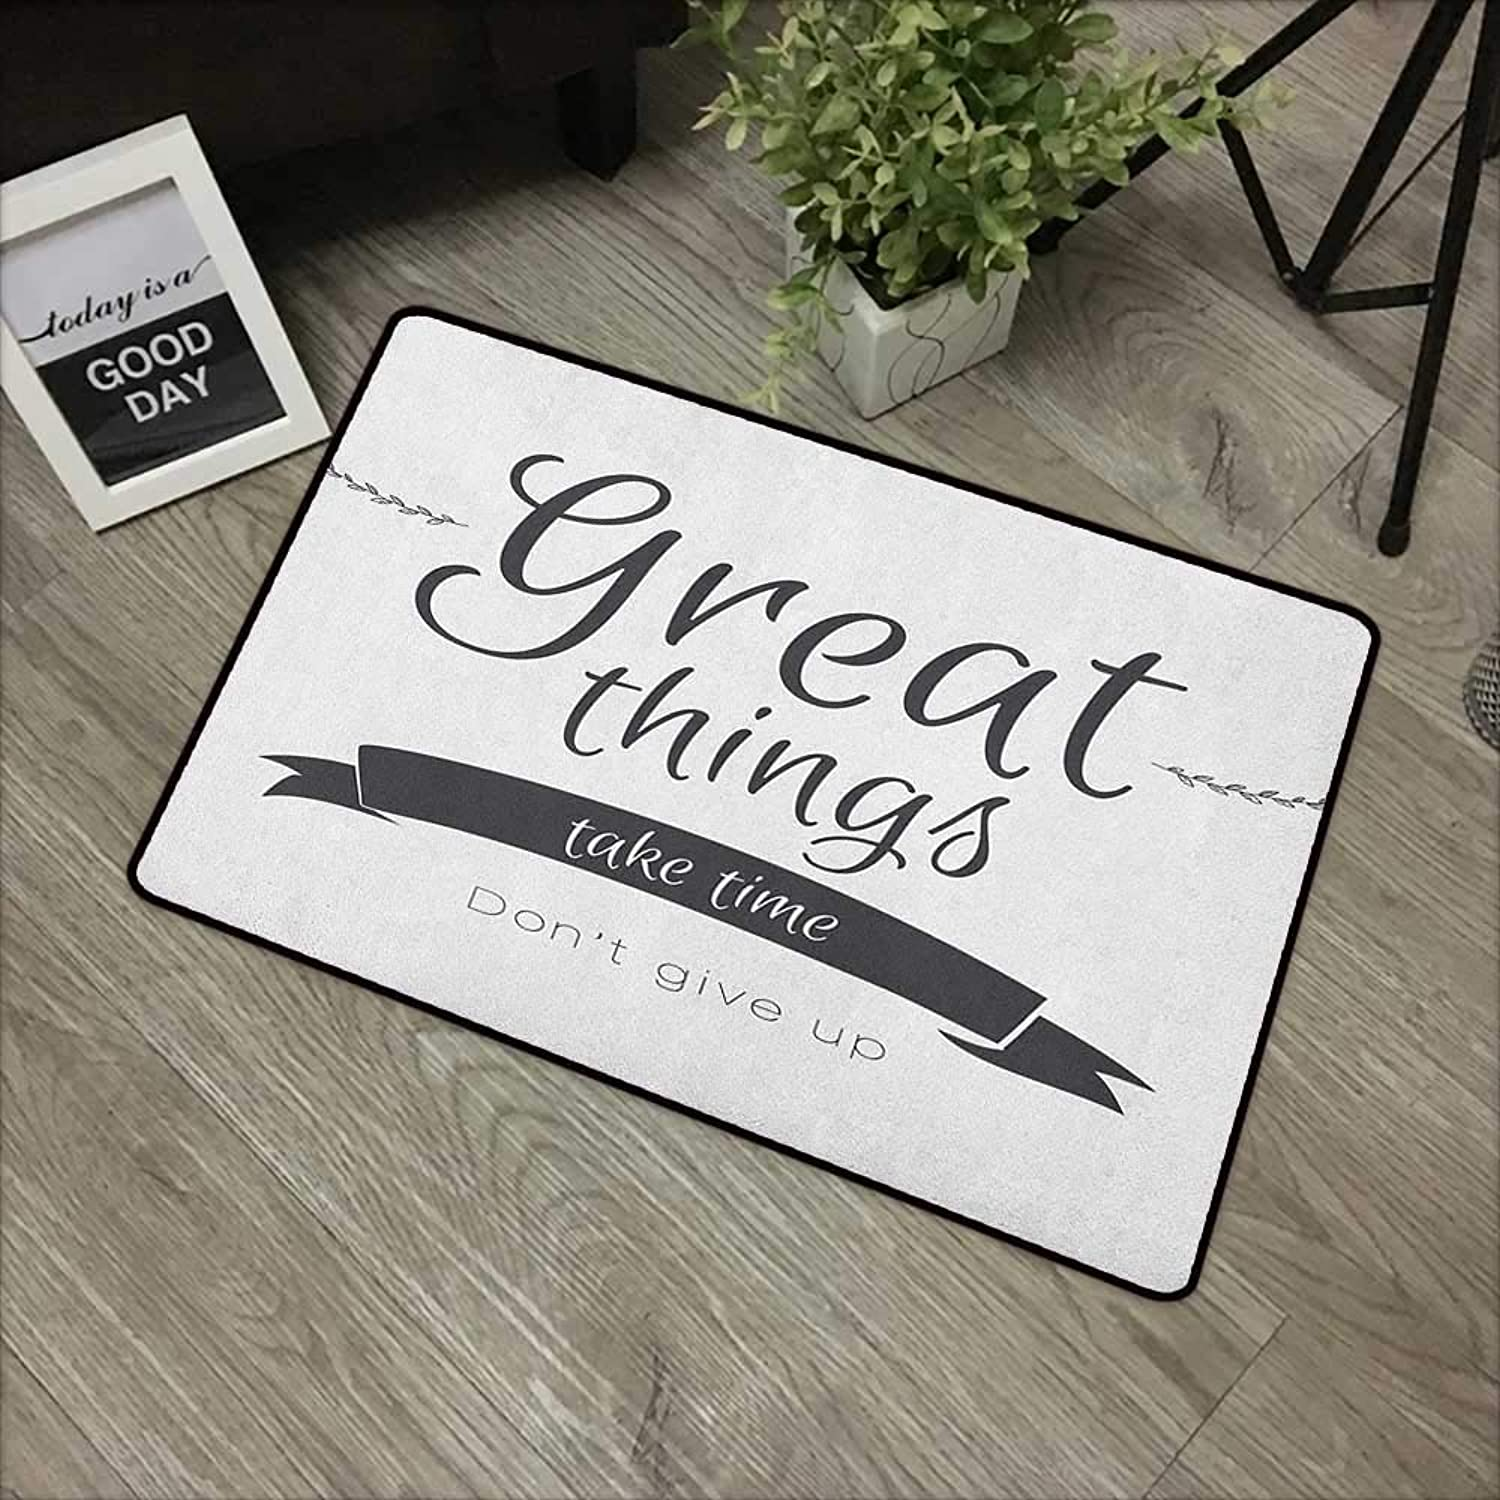 Bathroom anti-slip door mat W35 x L59 INCH Quotes,Modern Inspirational Lettering Great Thing Take Time dont Give up Lifestyle, Black White Easy to clean, no deformation, no fading Non-slip Door Mat Ca